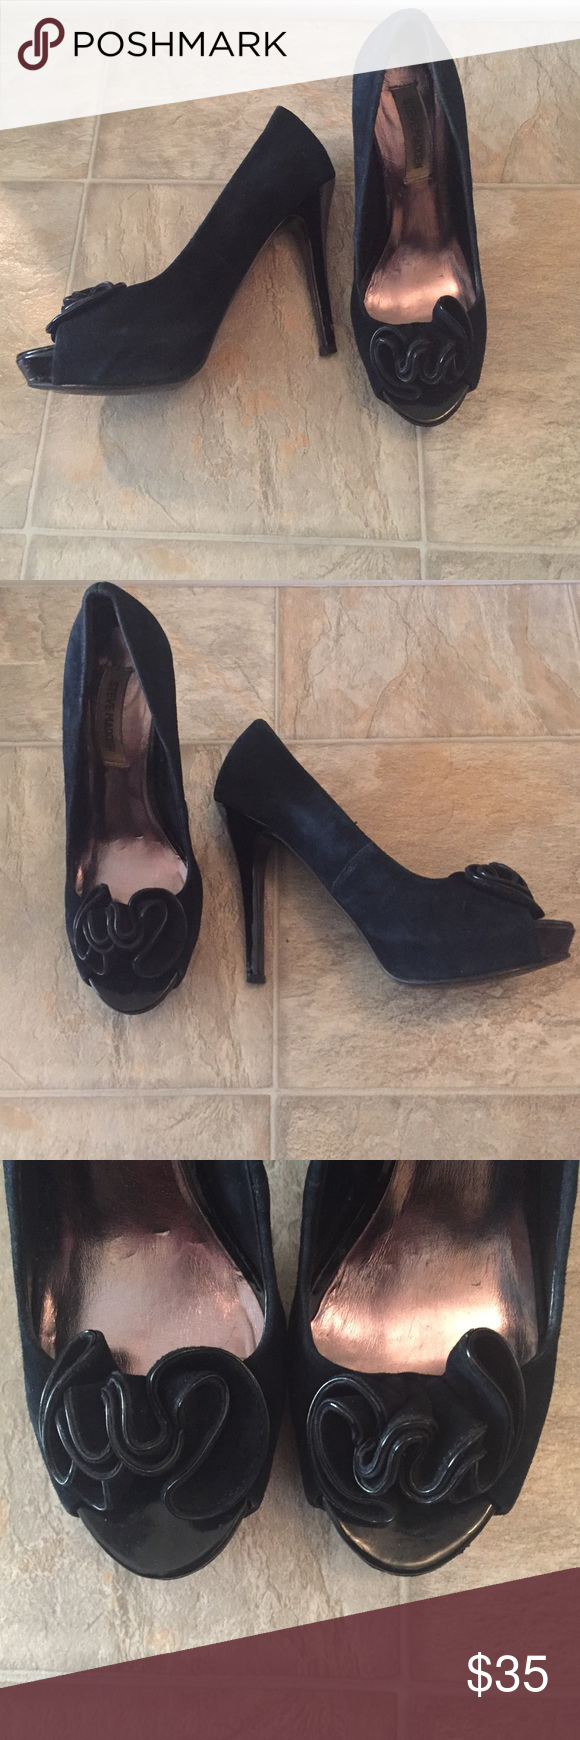 Black Velvet High Heels Black Velvet High Heels with a fun design on the open peep toe. Size 6. Good Condition. No Trades. Steve Madden Shoes Heels